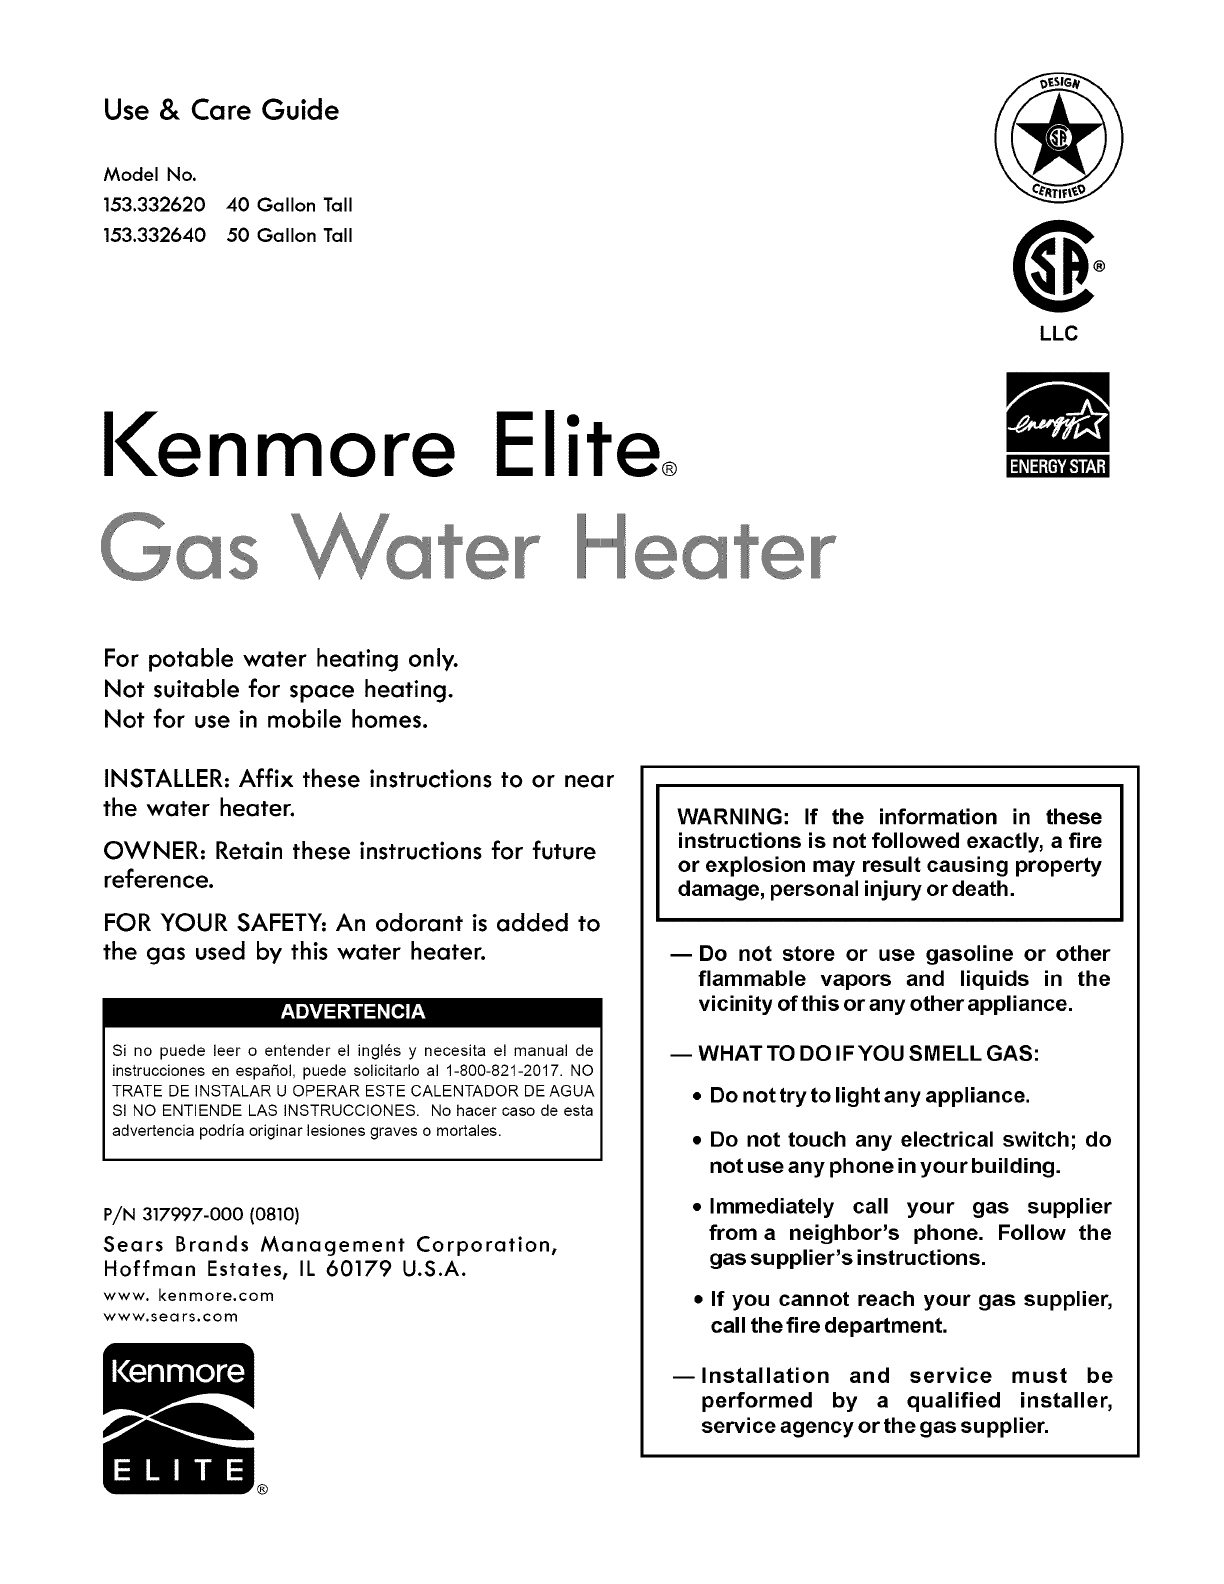 Kenmore Elite 153332620 User Manual GAS WATER HEATER Manuals ... on water heater installation diagram, ge water heater diagram, electric water heater design diagram, hot water heater diagram, electric water boiler, electric water heater wiring requirements, electric water heater thermostat, electric water wires, electric hot water tank wiring, water heater wire diagram, whirlpool electric water heater diagram, electric hot water heater wiring, heat pump water heater diagram, electric water heaters product, electric water heater anode rod, electric water heater troubleshooting, electric water heater elements, 240 circuit diagram, electric water heater pipe diagram, water tank wiring diagram,